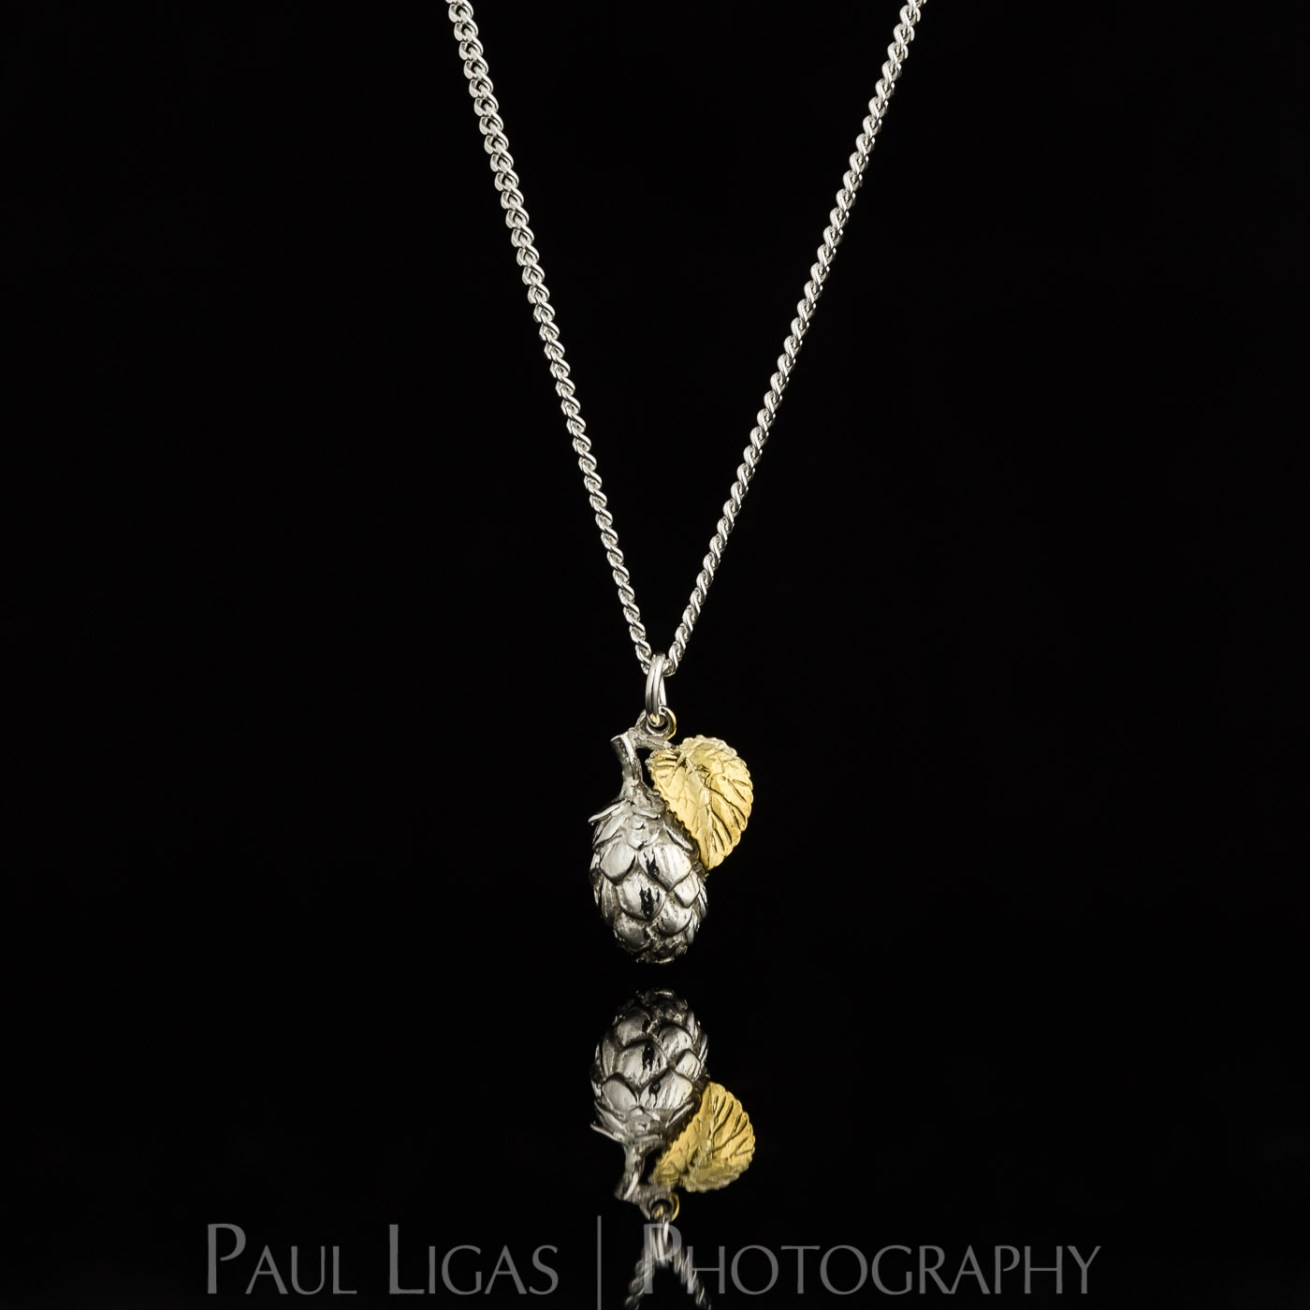 JB Gaynan & Son, Ledbury, Herefordshire jewellery product photographer photography 1654